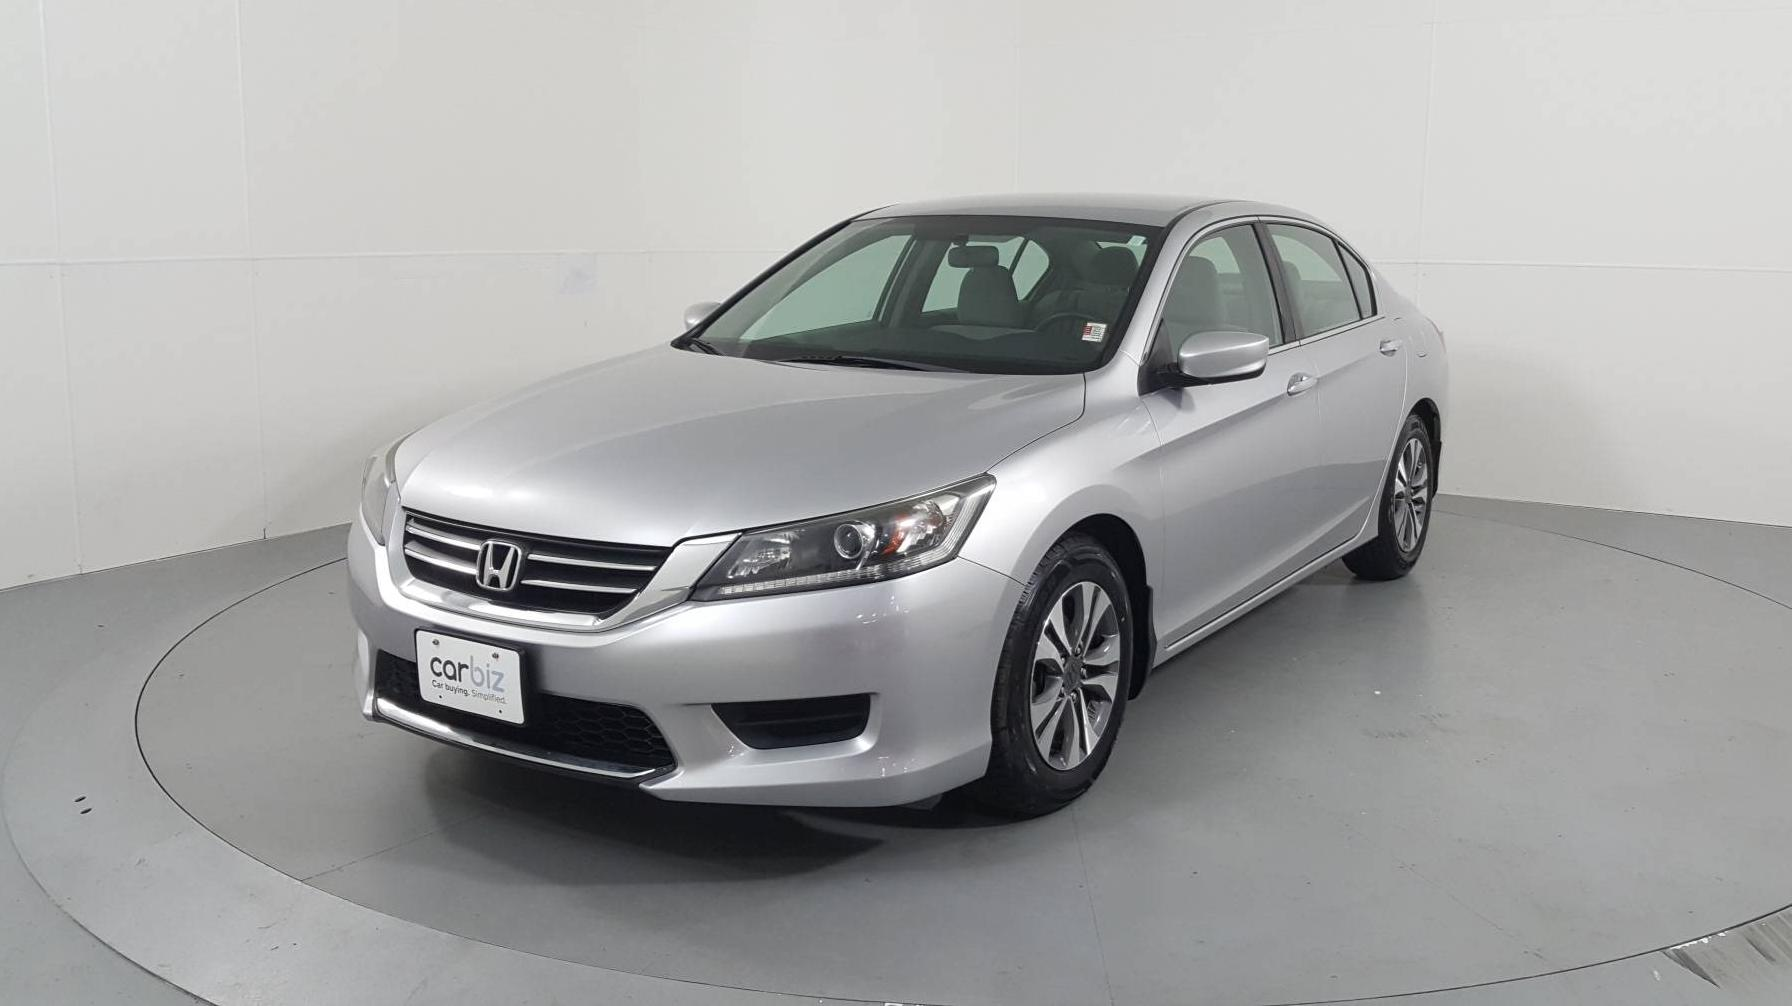 Certified Pre-Owned 2013 Honda Accord Sdn LX